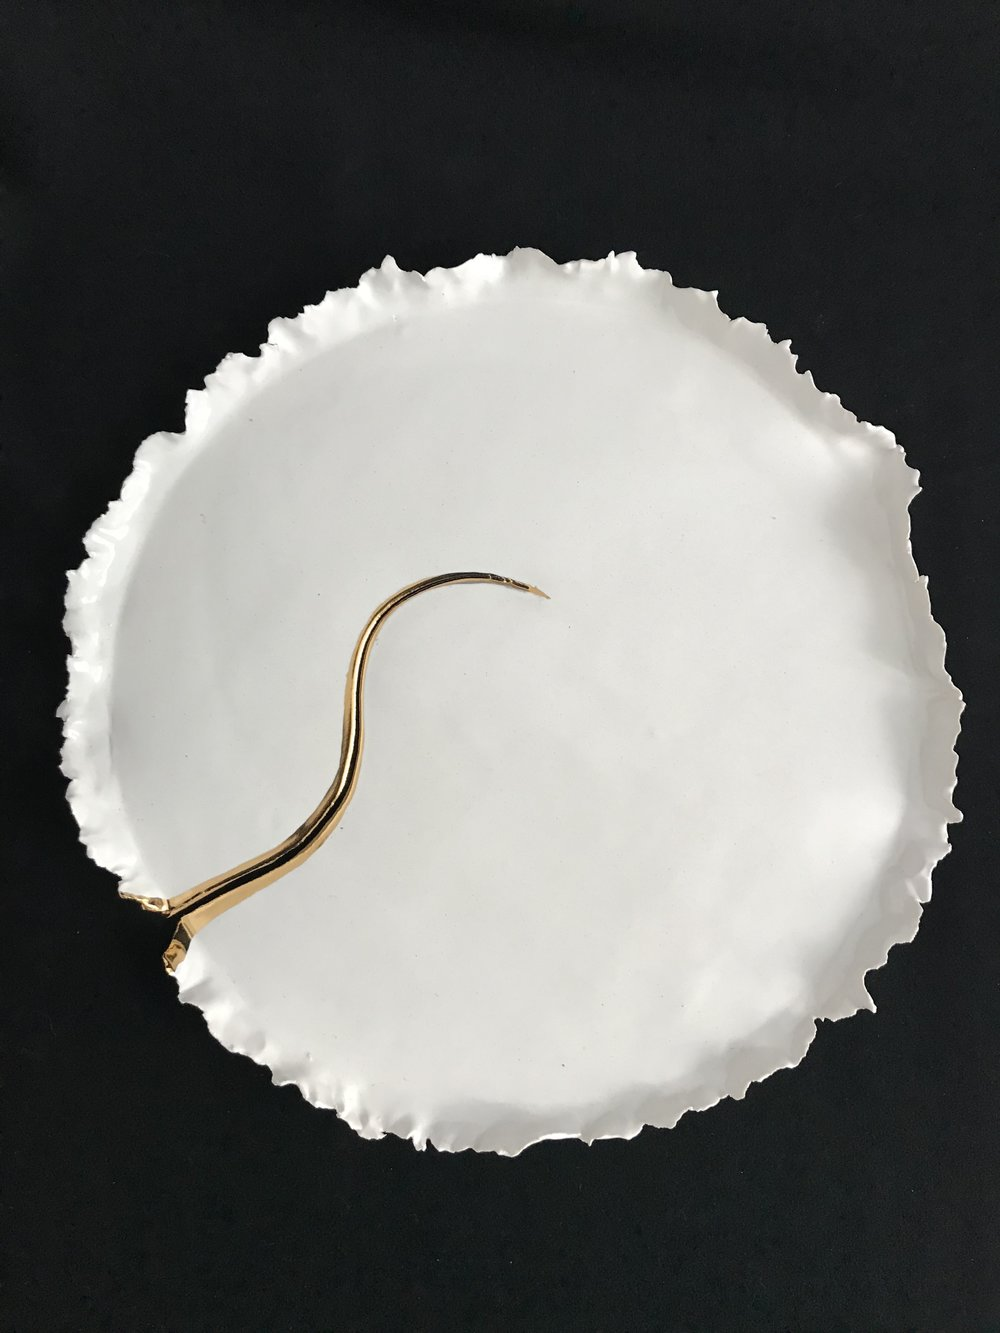 "Victoria Lotus Leaf: How the Light Gets In (S Curve),  glazed porcelain with gold on cracked area only, 1""H rim x 12.75""diameter, 2017  $325"